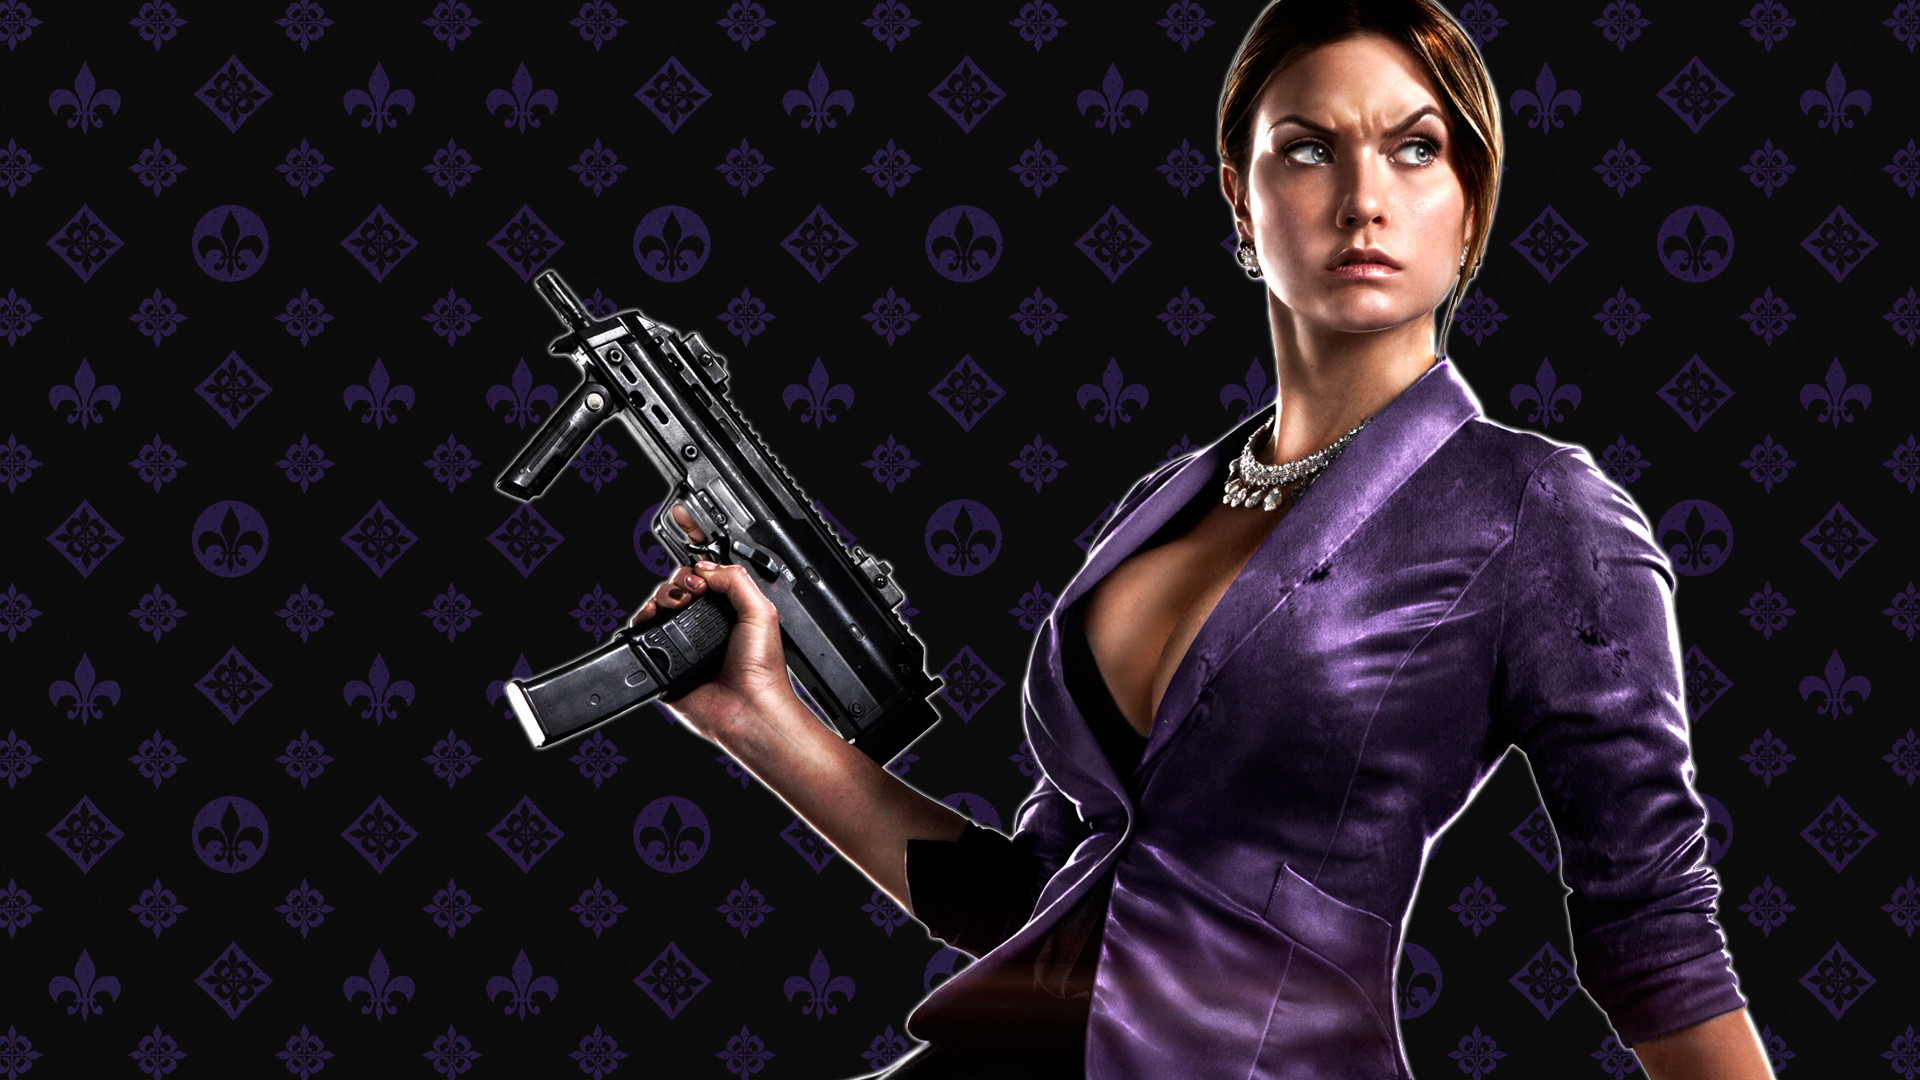 1920x1080 Shaundi - Saints Row IV promo wallpaper.jpg